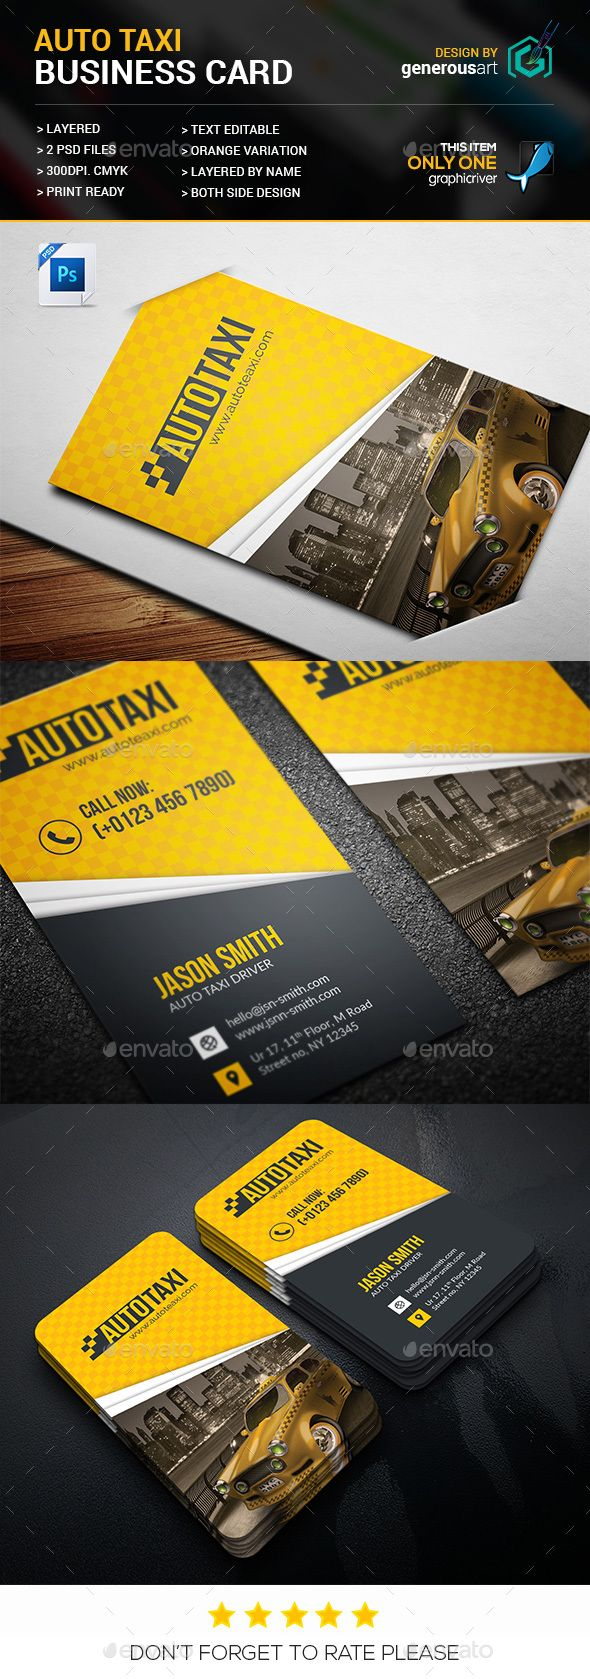 Auto Taxi Business Card | Print templates, Card printing and Taxi